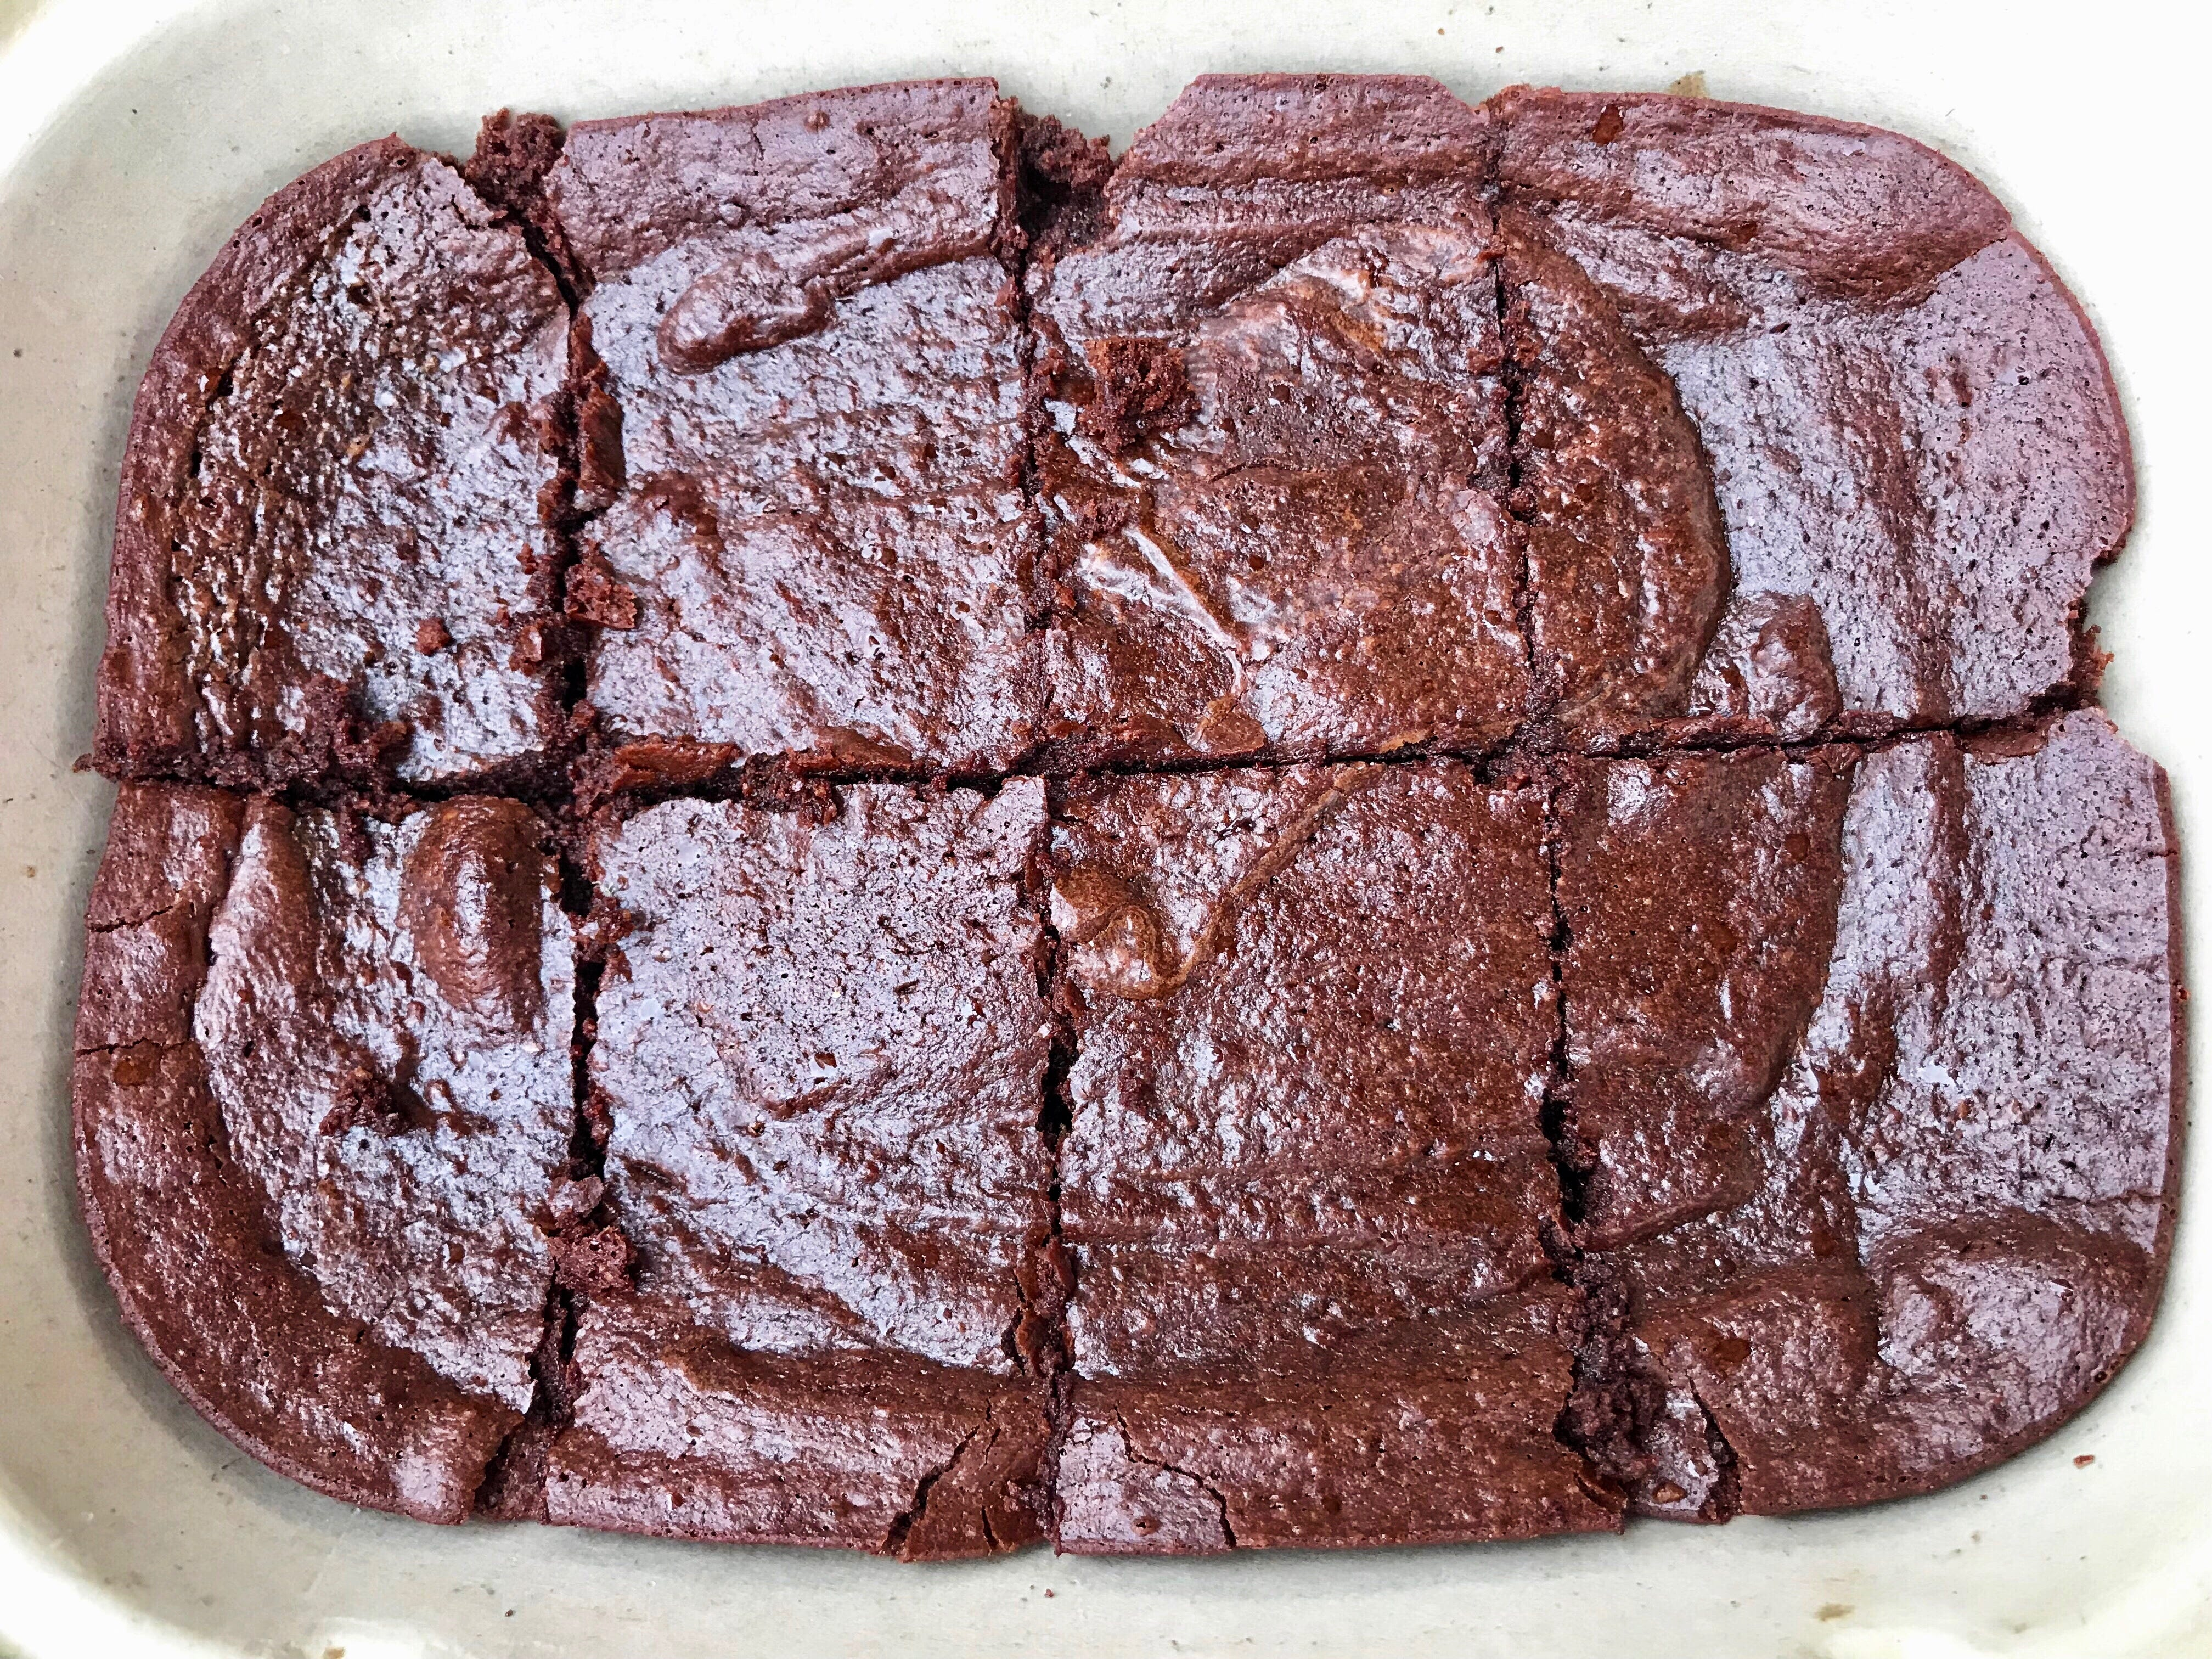 Fittest Kitchen has launched a meal prep service, which includes menu items like the pan of brownies.